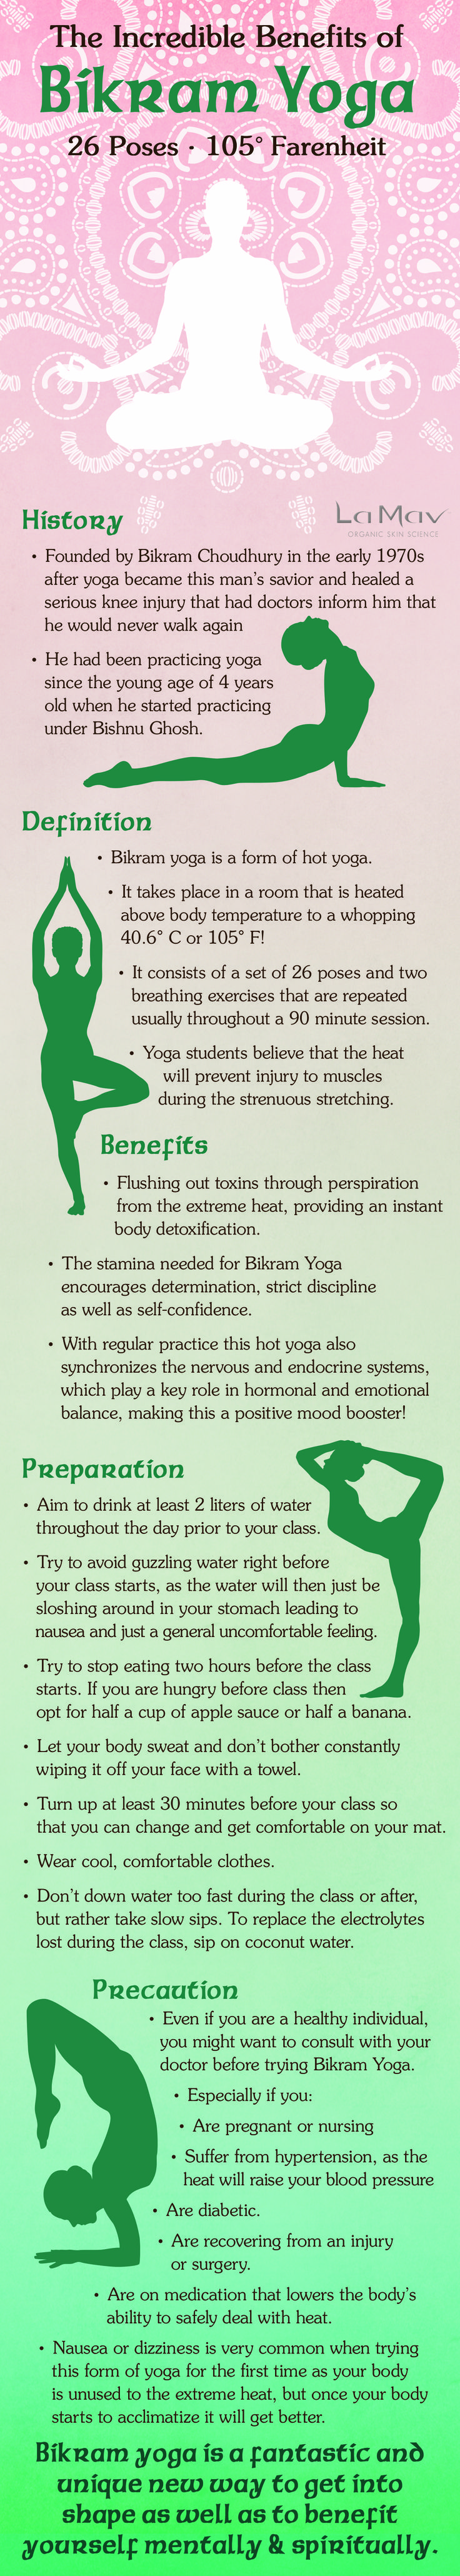 #BikramYoga - where it began,what it is, and the benefits #lamav http://www.lamav.com/incredible-benefits-bikram-yoga/